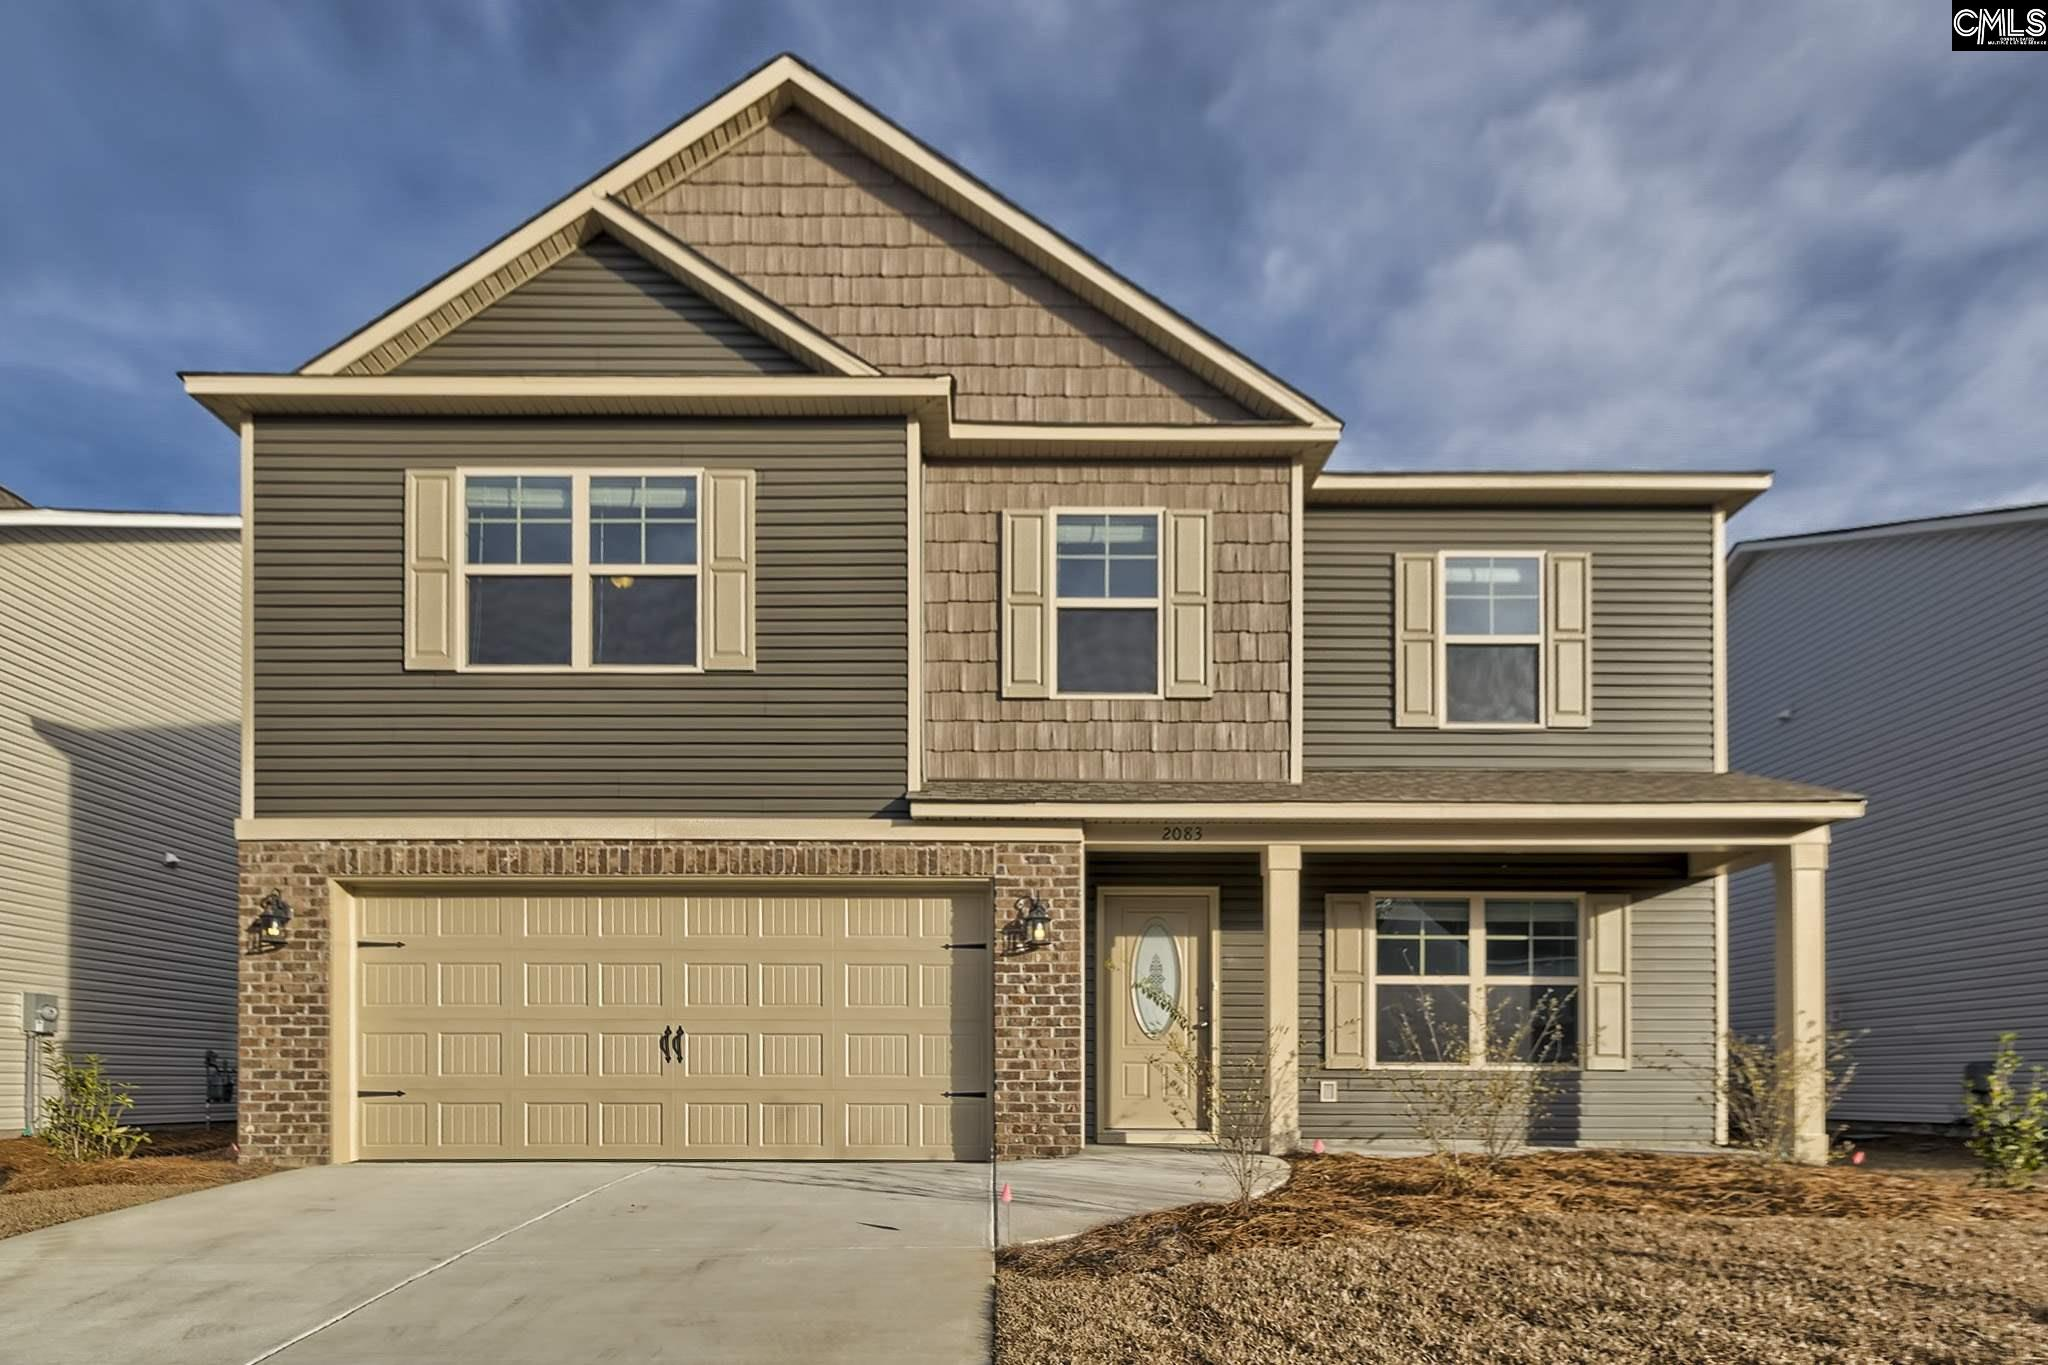 228 Cassique (lot 69) Lexington, SC 29073